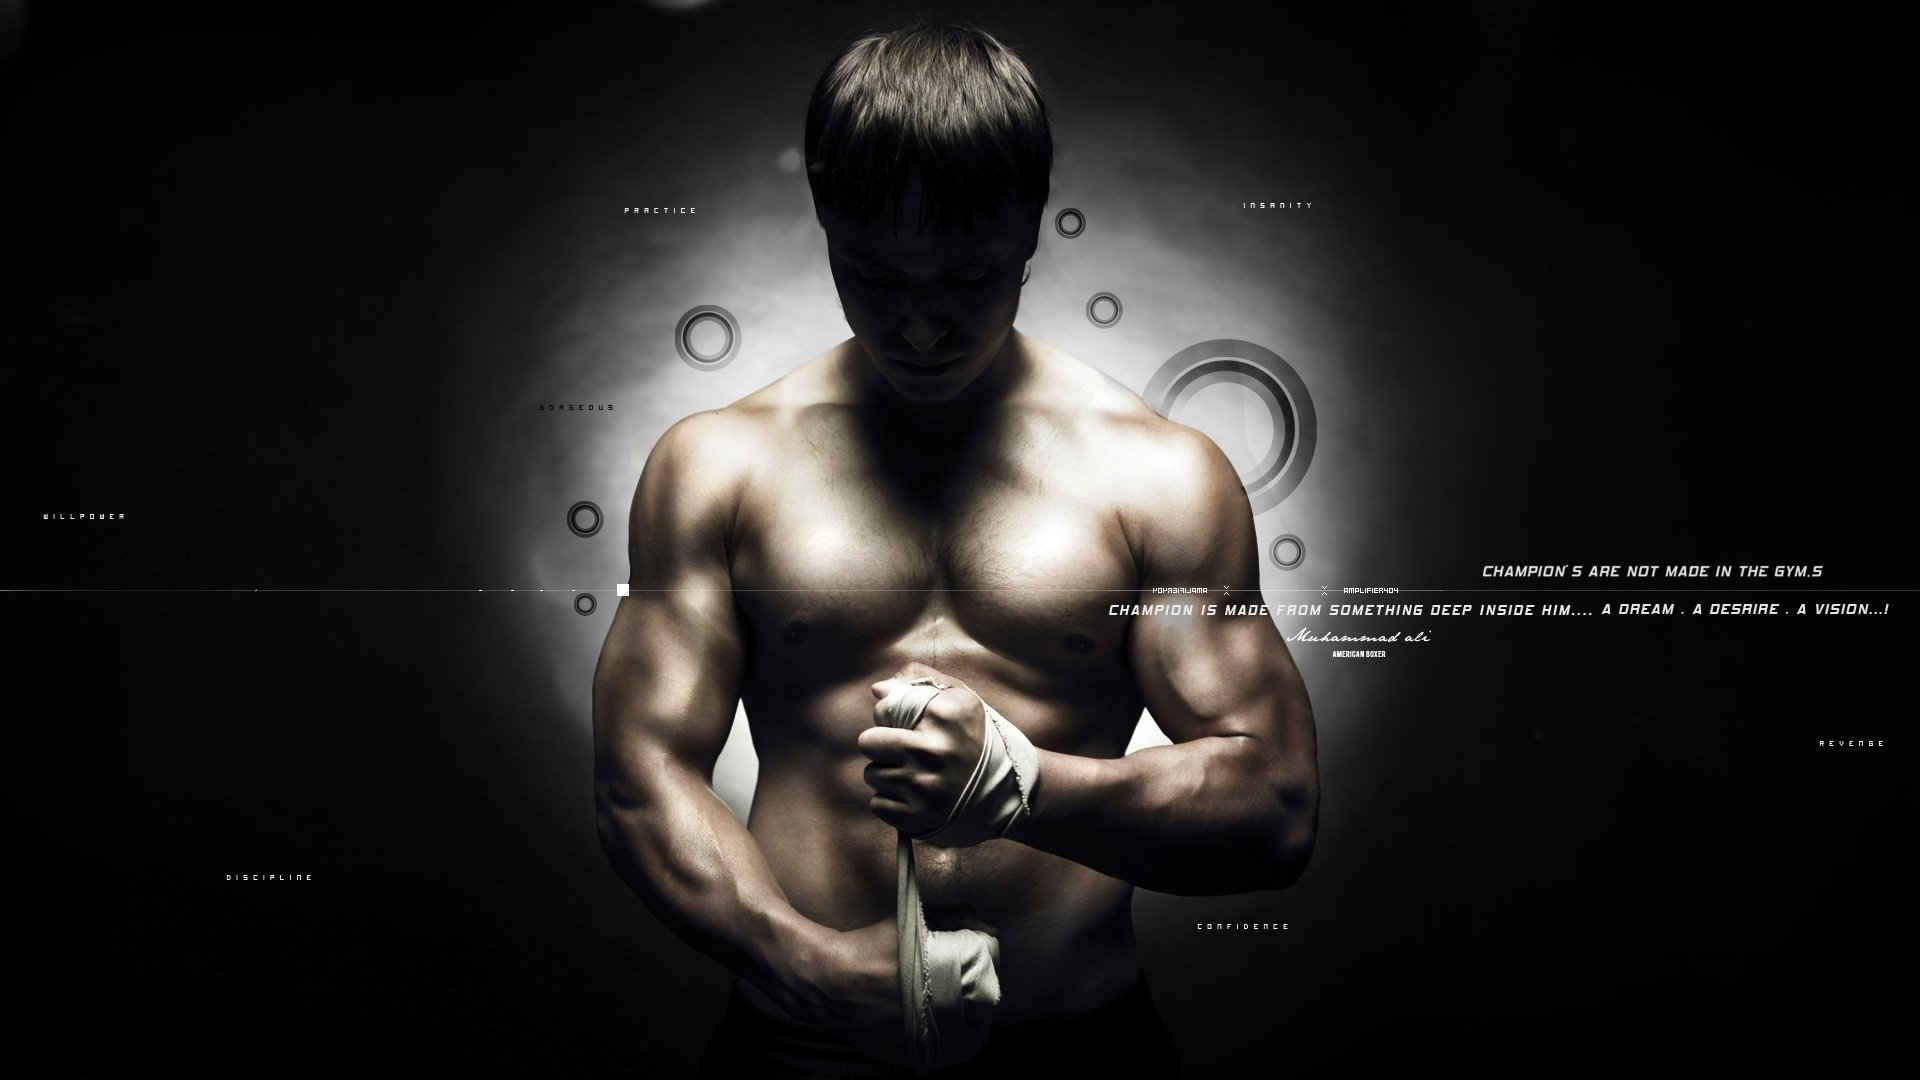 Mixed martial arts hd wallpaper background image 1920x1080 id wallpapers id202715 thecheapjerseys Choice Image